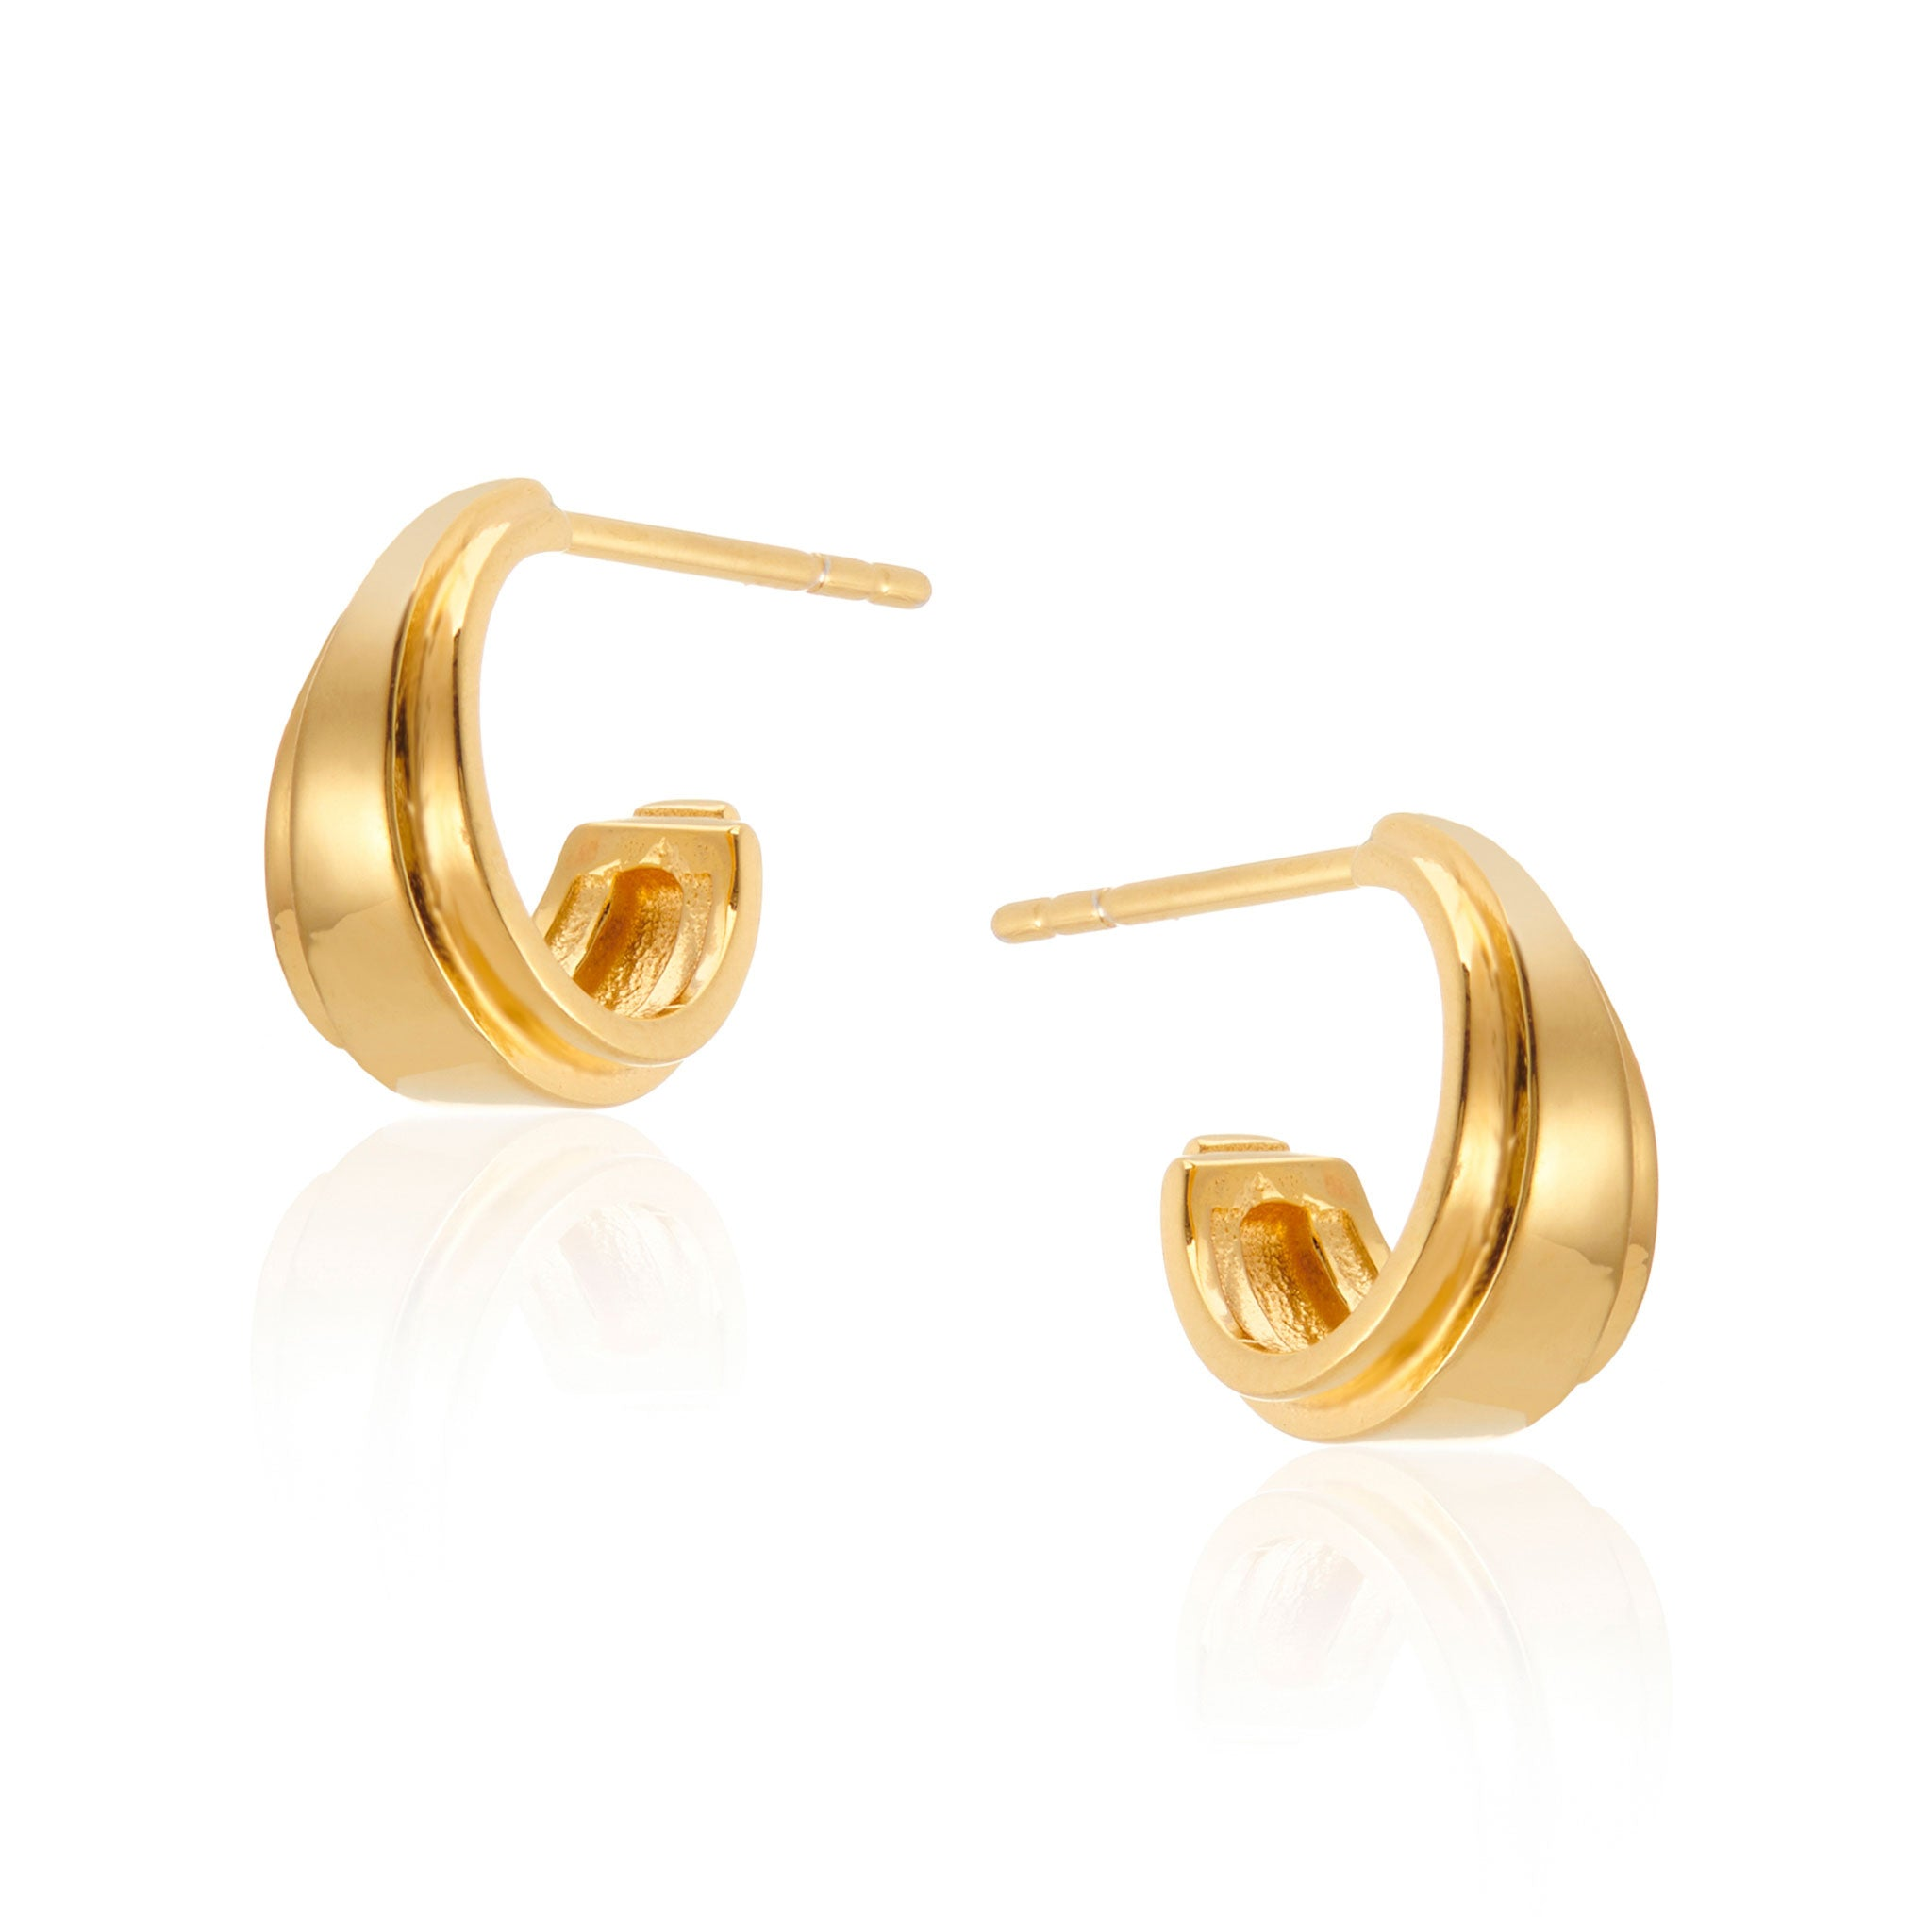 Angelina Mini Hoop Earrings in Gold